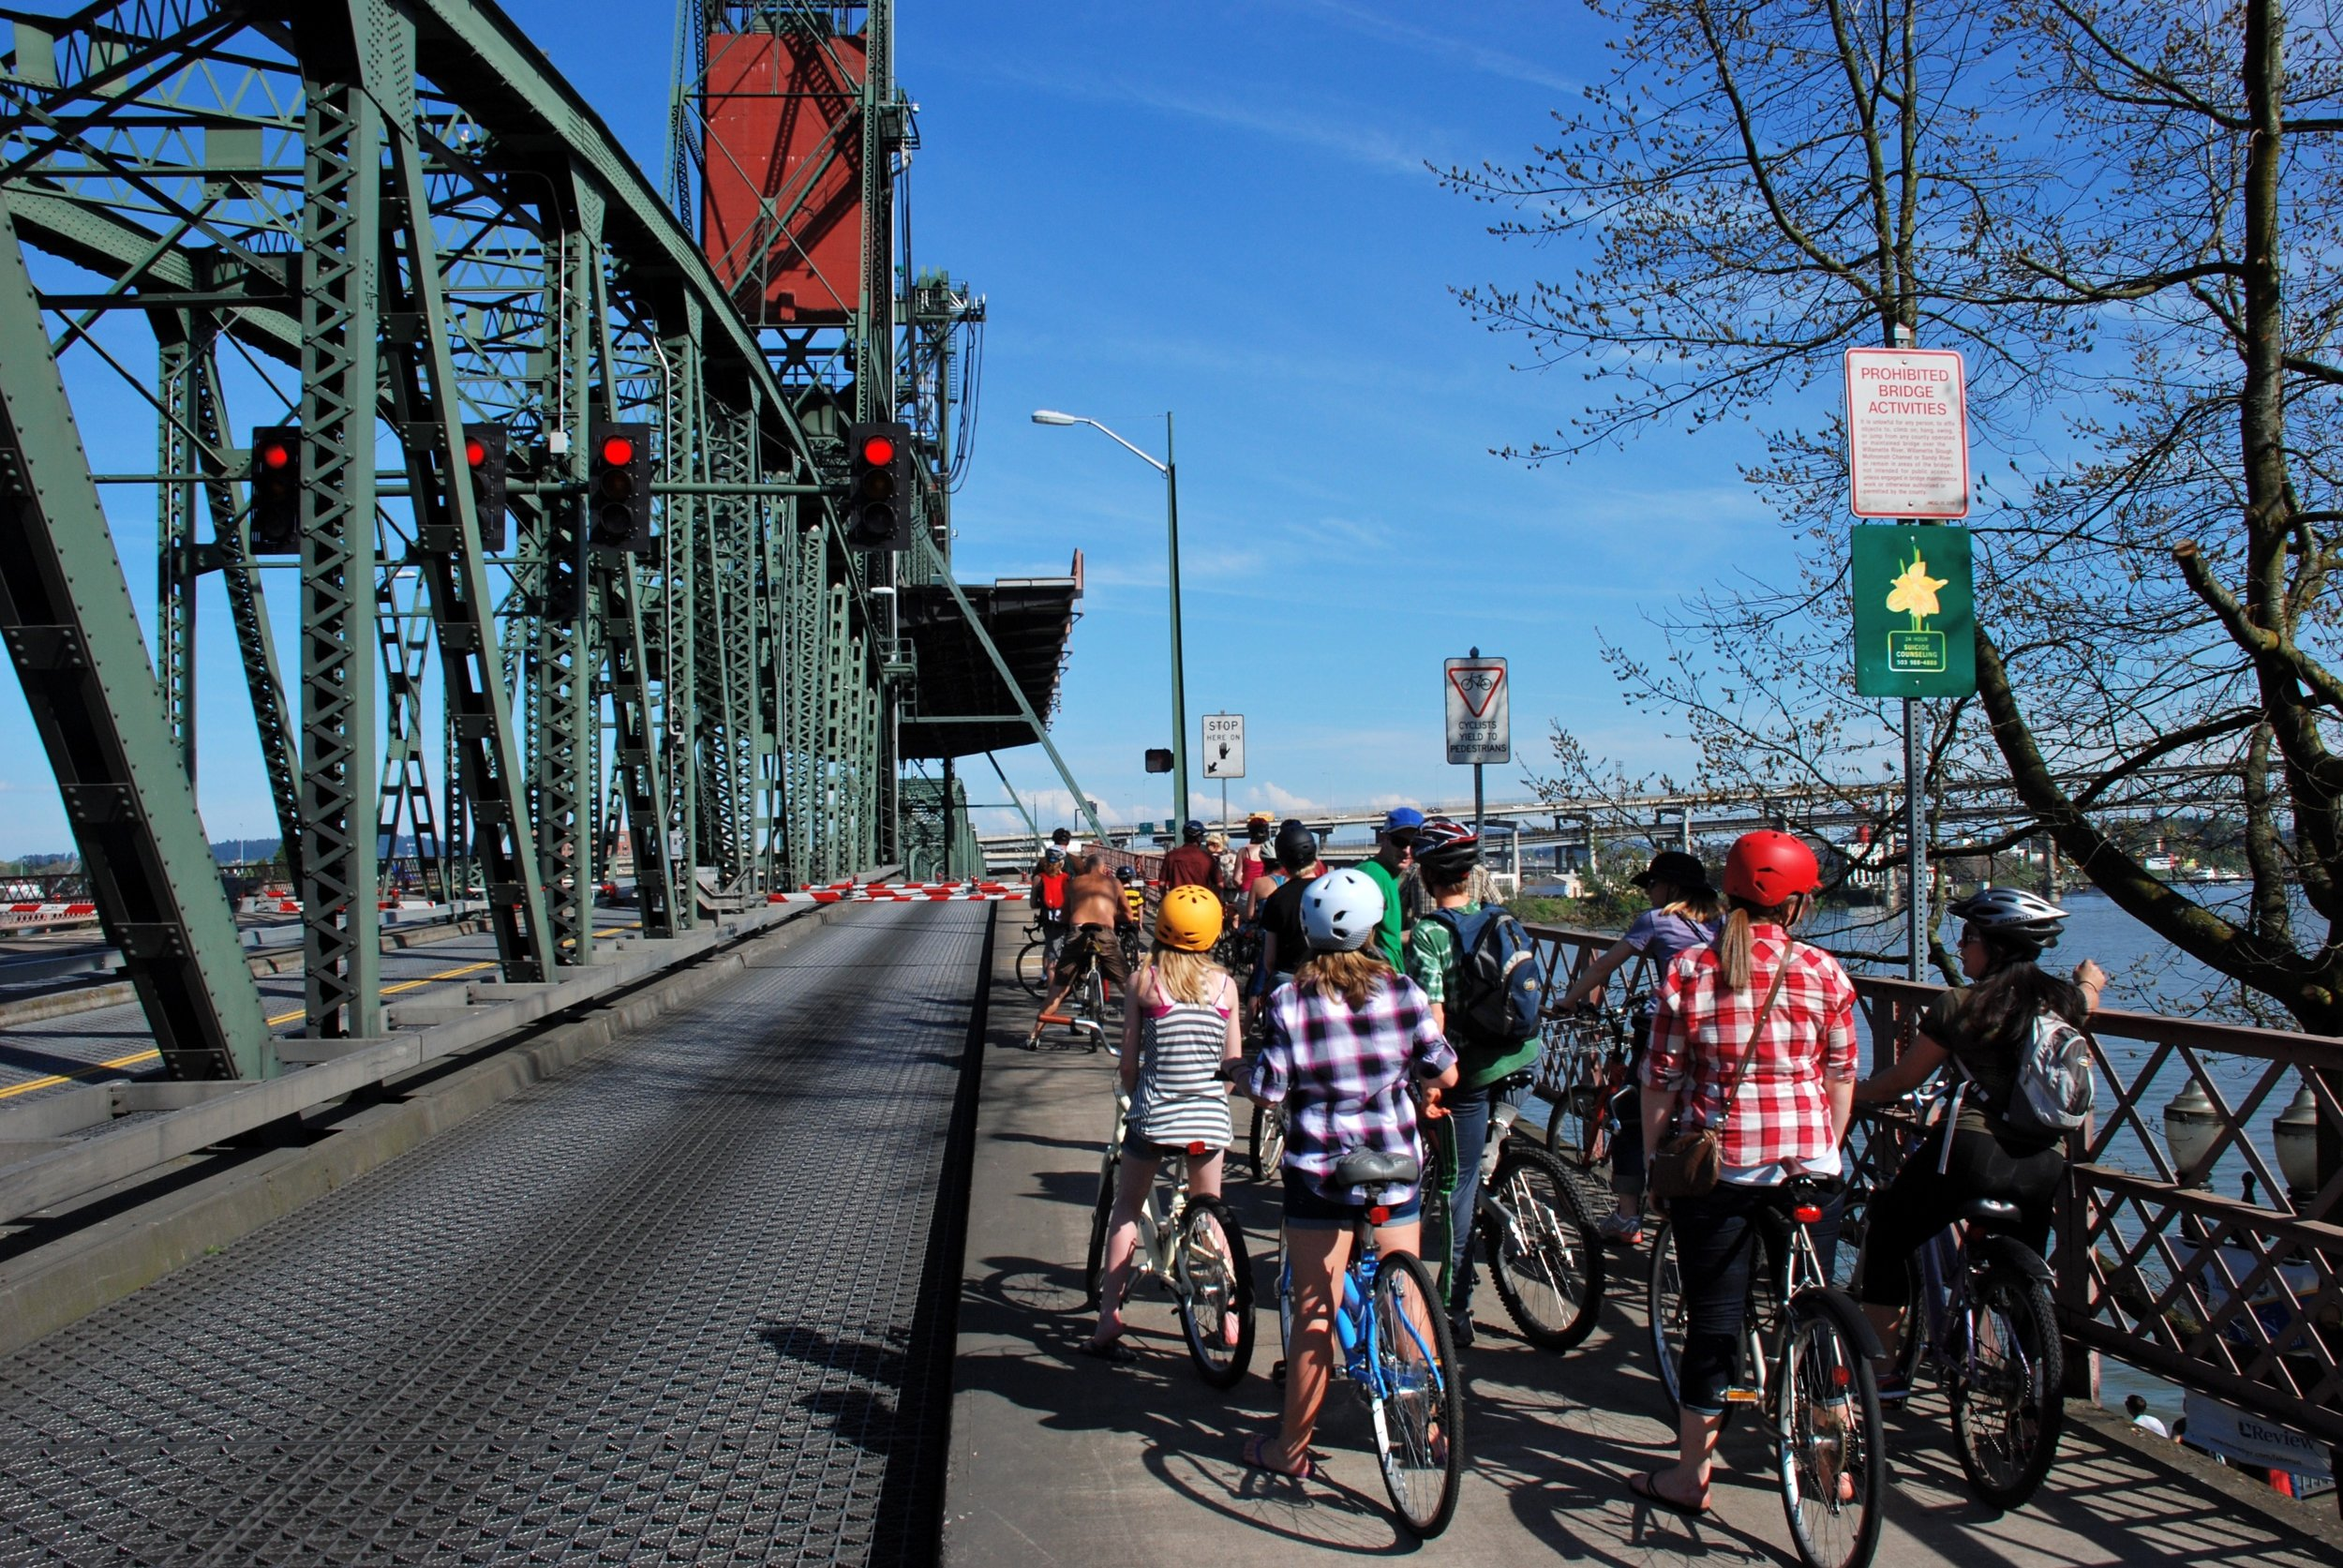 Cyclists_waiting_on_Hawthorne_Bridge_during_a_lift.jpg